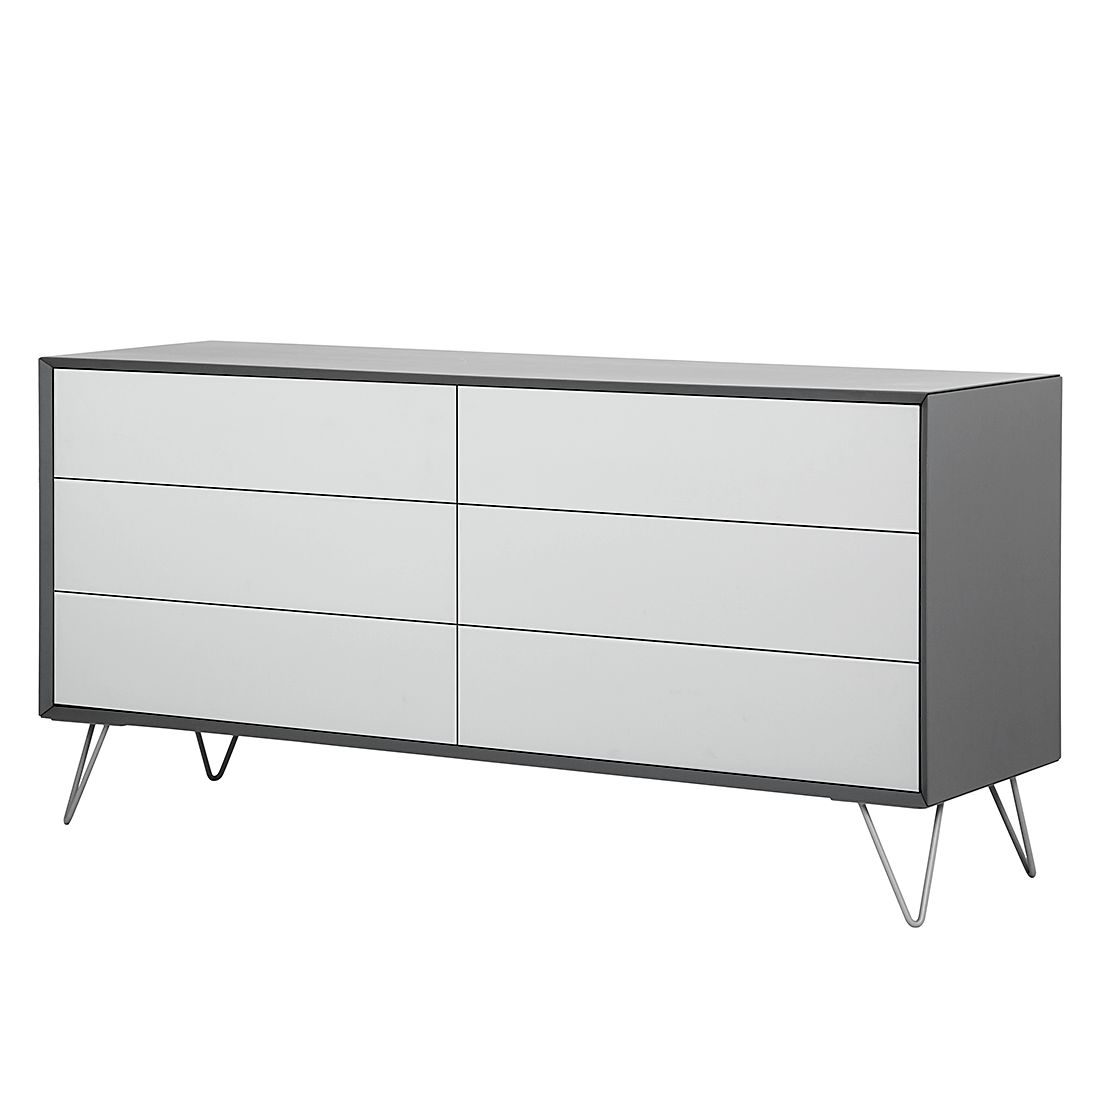 sideboard jerrell ii matt grau m rteens kleinm bel kommoden sideboards sideboards. Black Bedroom Furniture Sets. Home Design Ideas